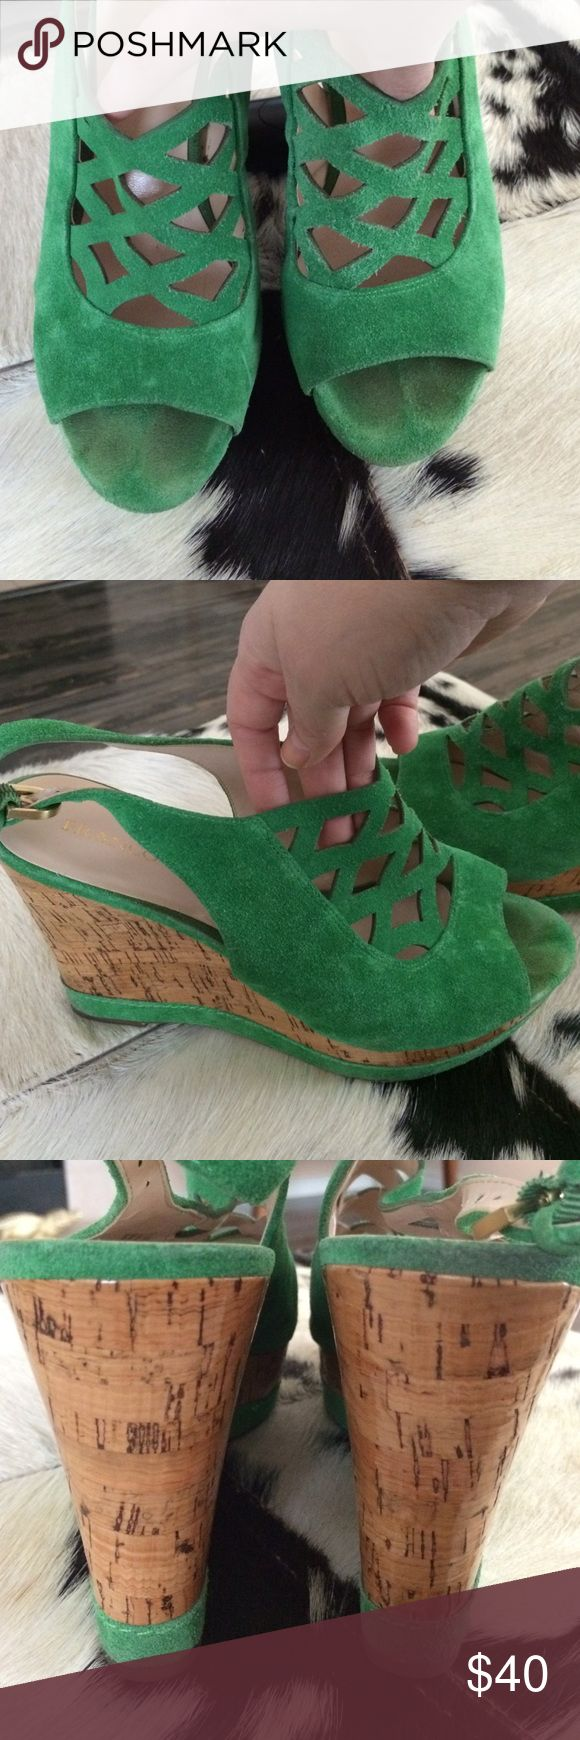 💚Vibrant Green Suede Cork Wedges💚 💚Vibrant Green Suede Cork Wedges💚 -- these have a lot of wear left! Minor suede imperfections from normal wear - glossy cork wedge - 4 inch height -- lattice detail makes these cute but with an edge ✨ Franco Sarto Shoes